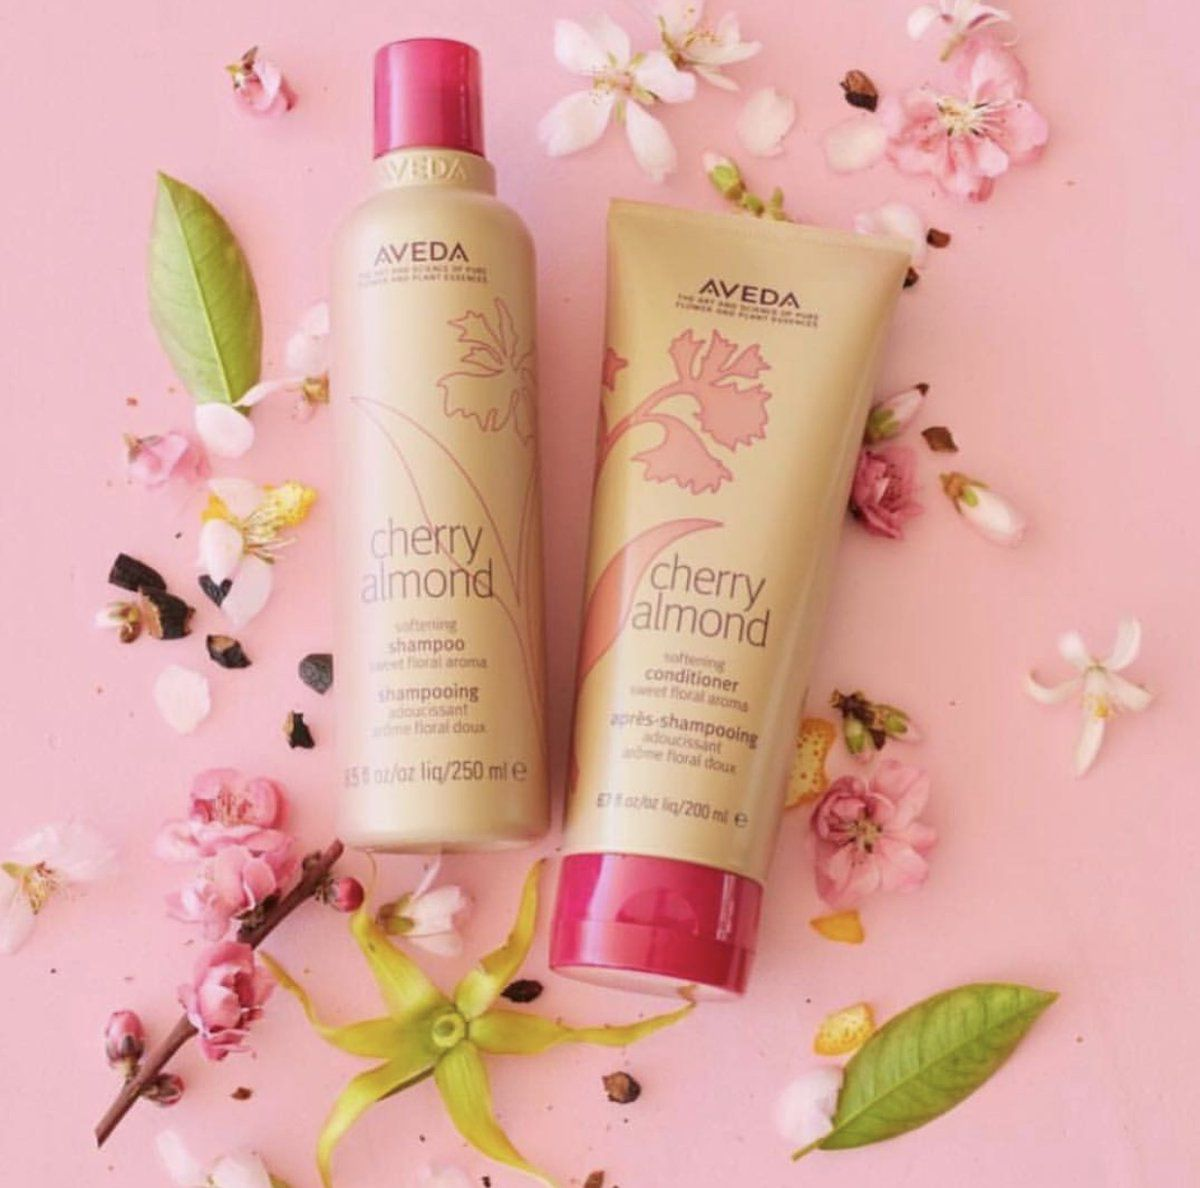 Image result for cherry almond aveda